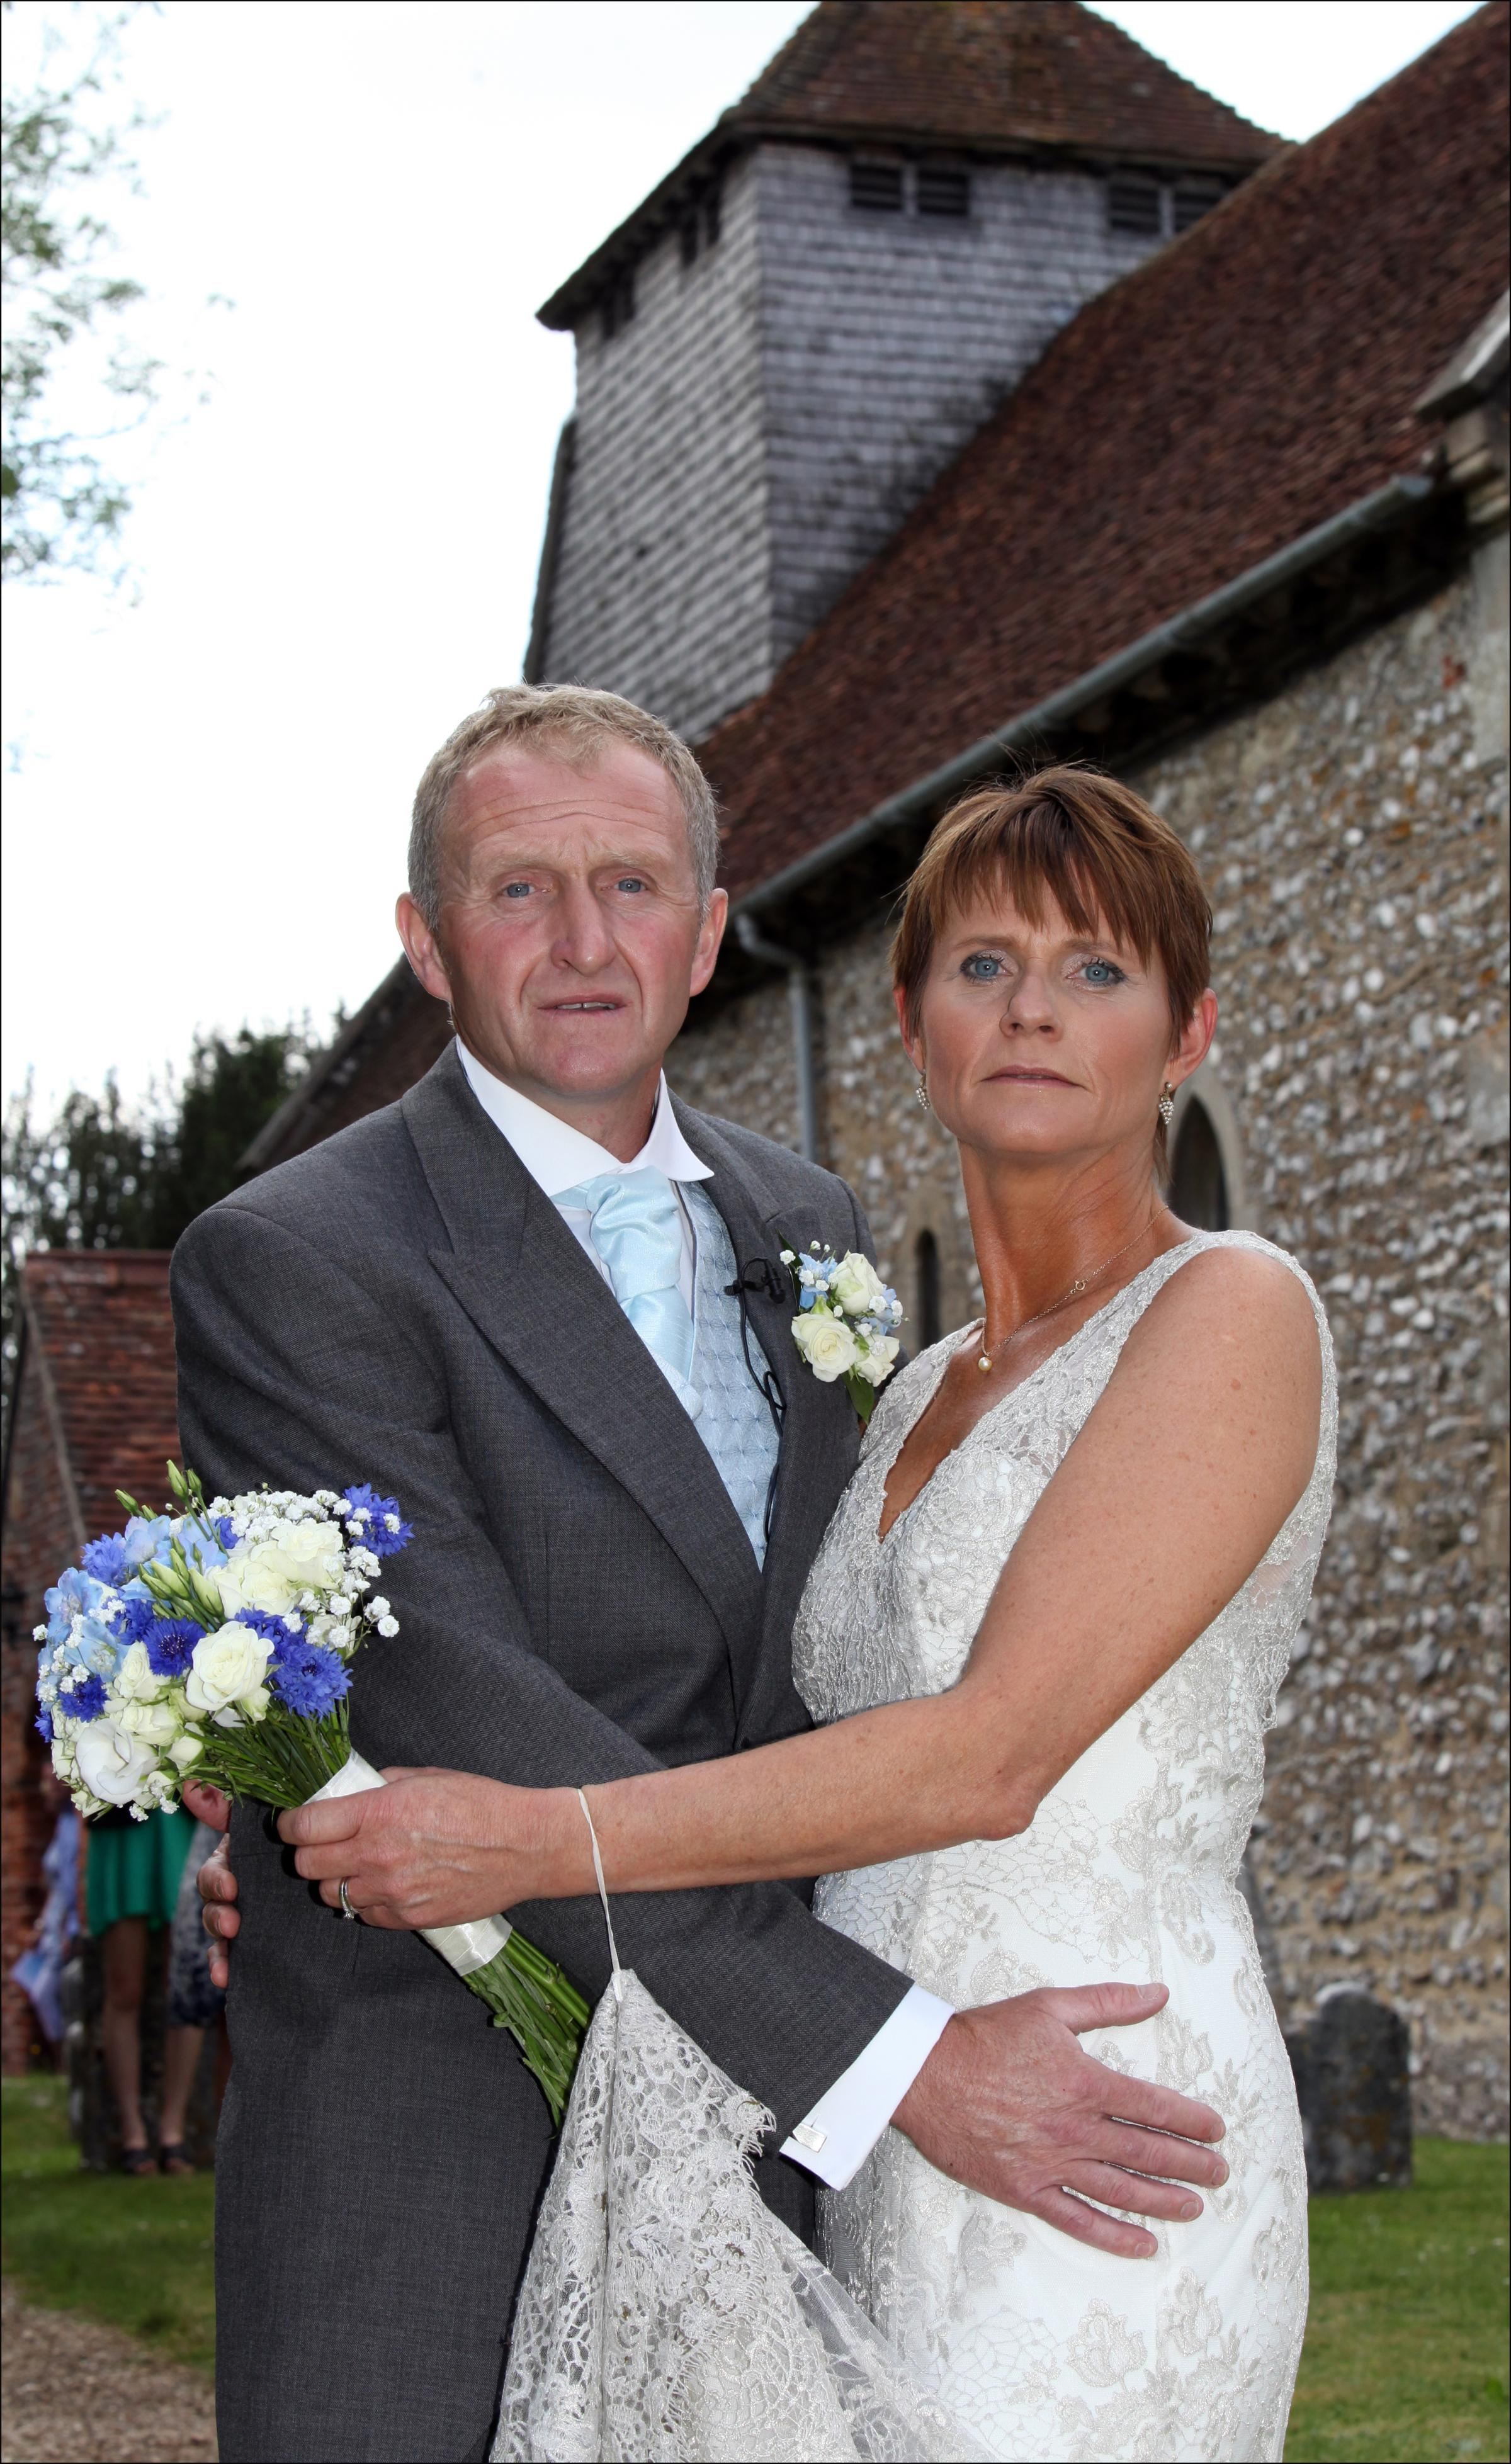 Wedding joy for couple after wedding thrown into chaos by church blaze